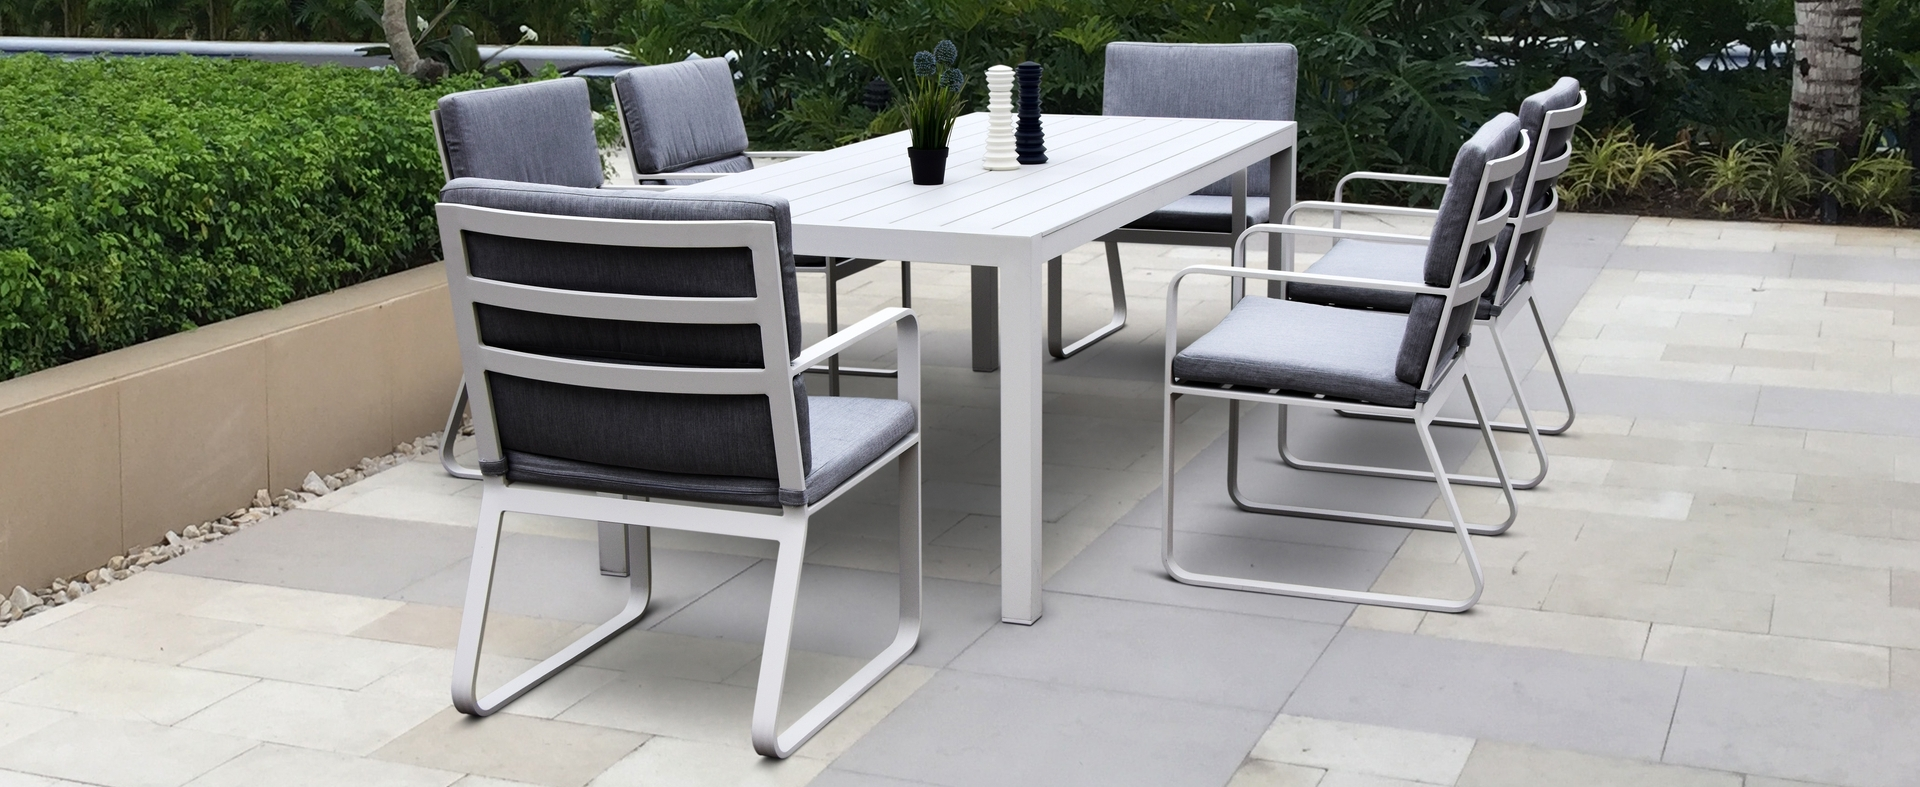 Current Cast Aluminum Patio Conversation Sets Intended For Nice Modern Aluminum Outdoor Furniture Ab Collections Cast Patio (View 7 of 20)